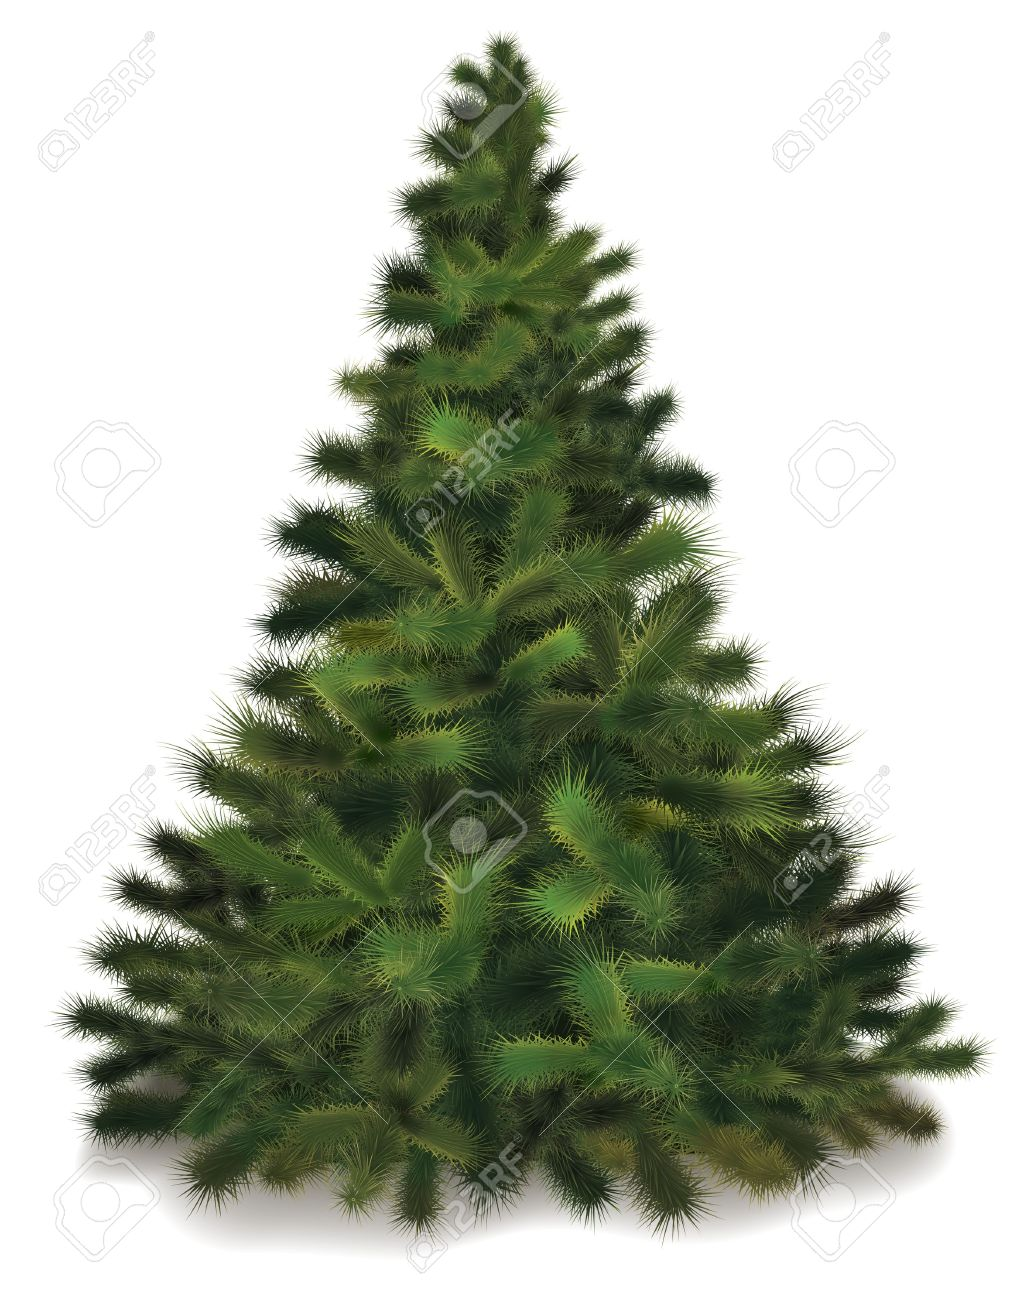 Christmas Tree. Realistic Illustration Of Fluffy Pine Tree Royalty ...